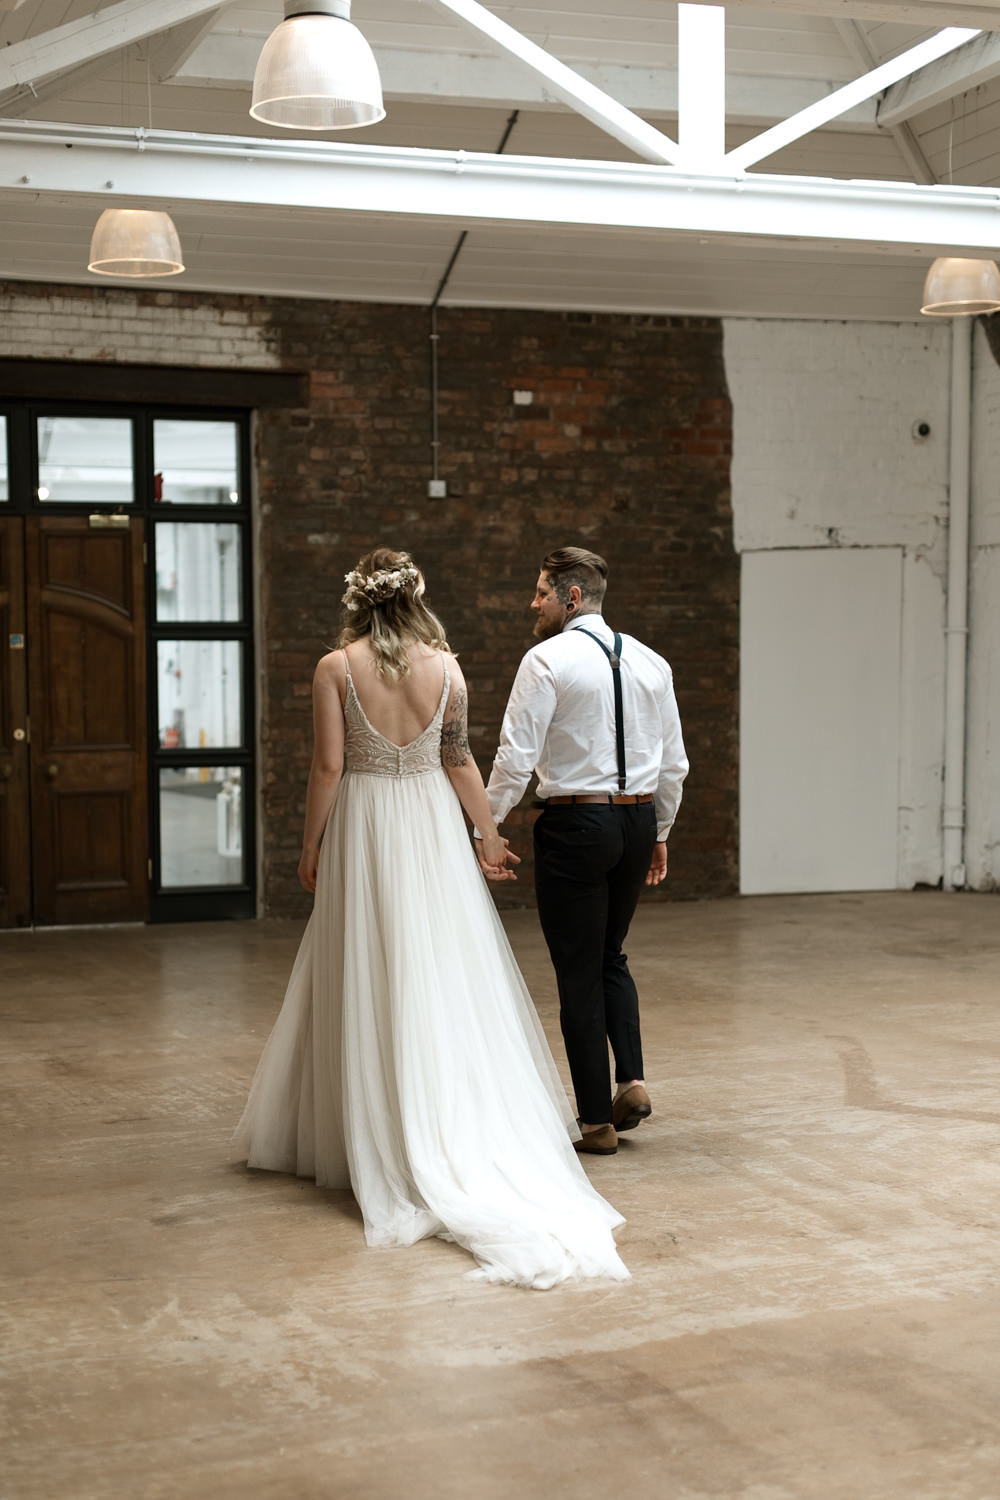 Dress Gown Bride Bridal Maggie Sottero Floaty Tulle Beaded Straps Train Moroccan Wedding Ideas Emma Louise Photography